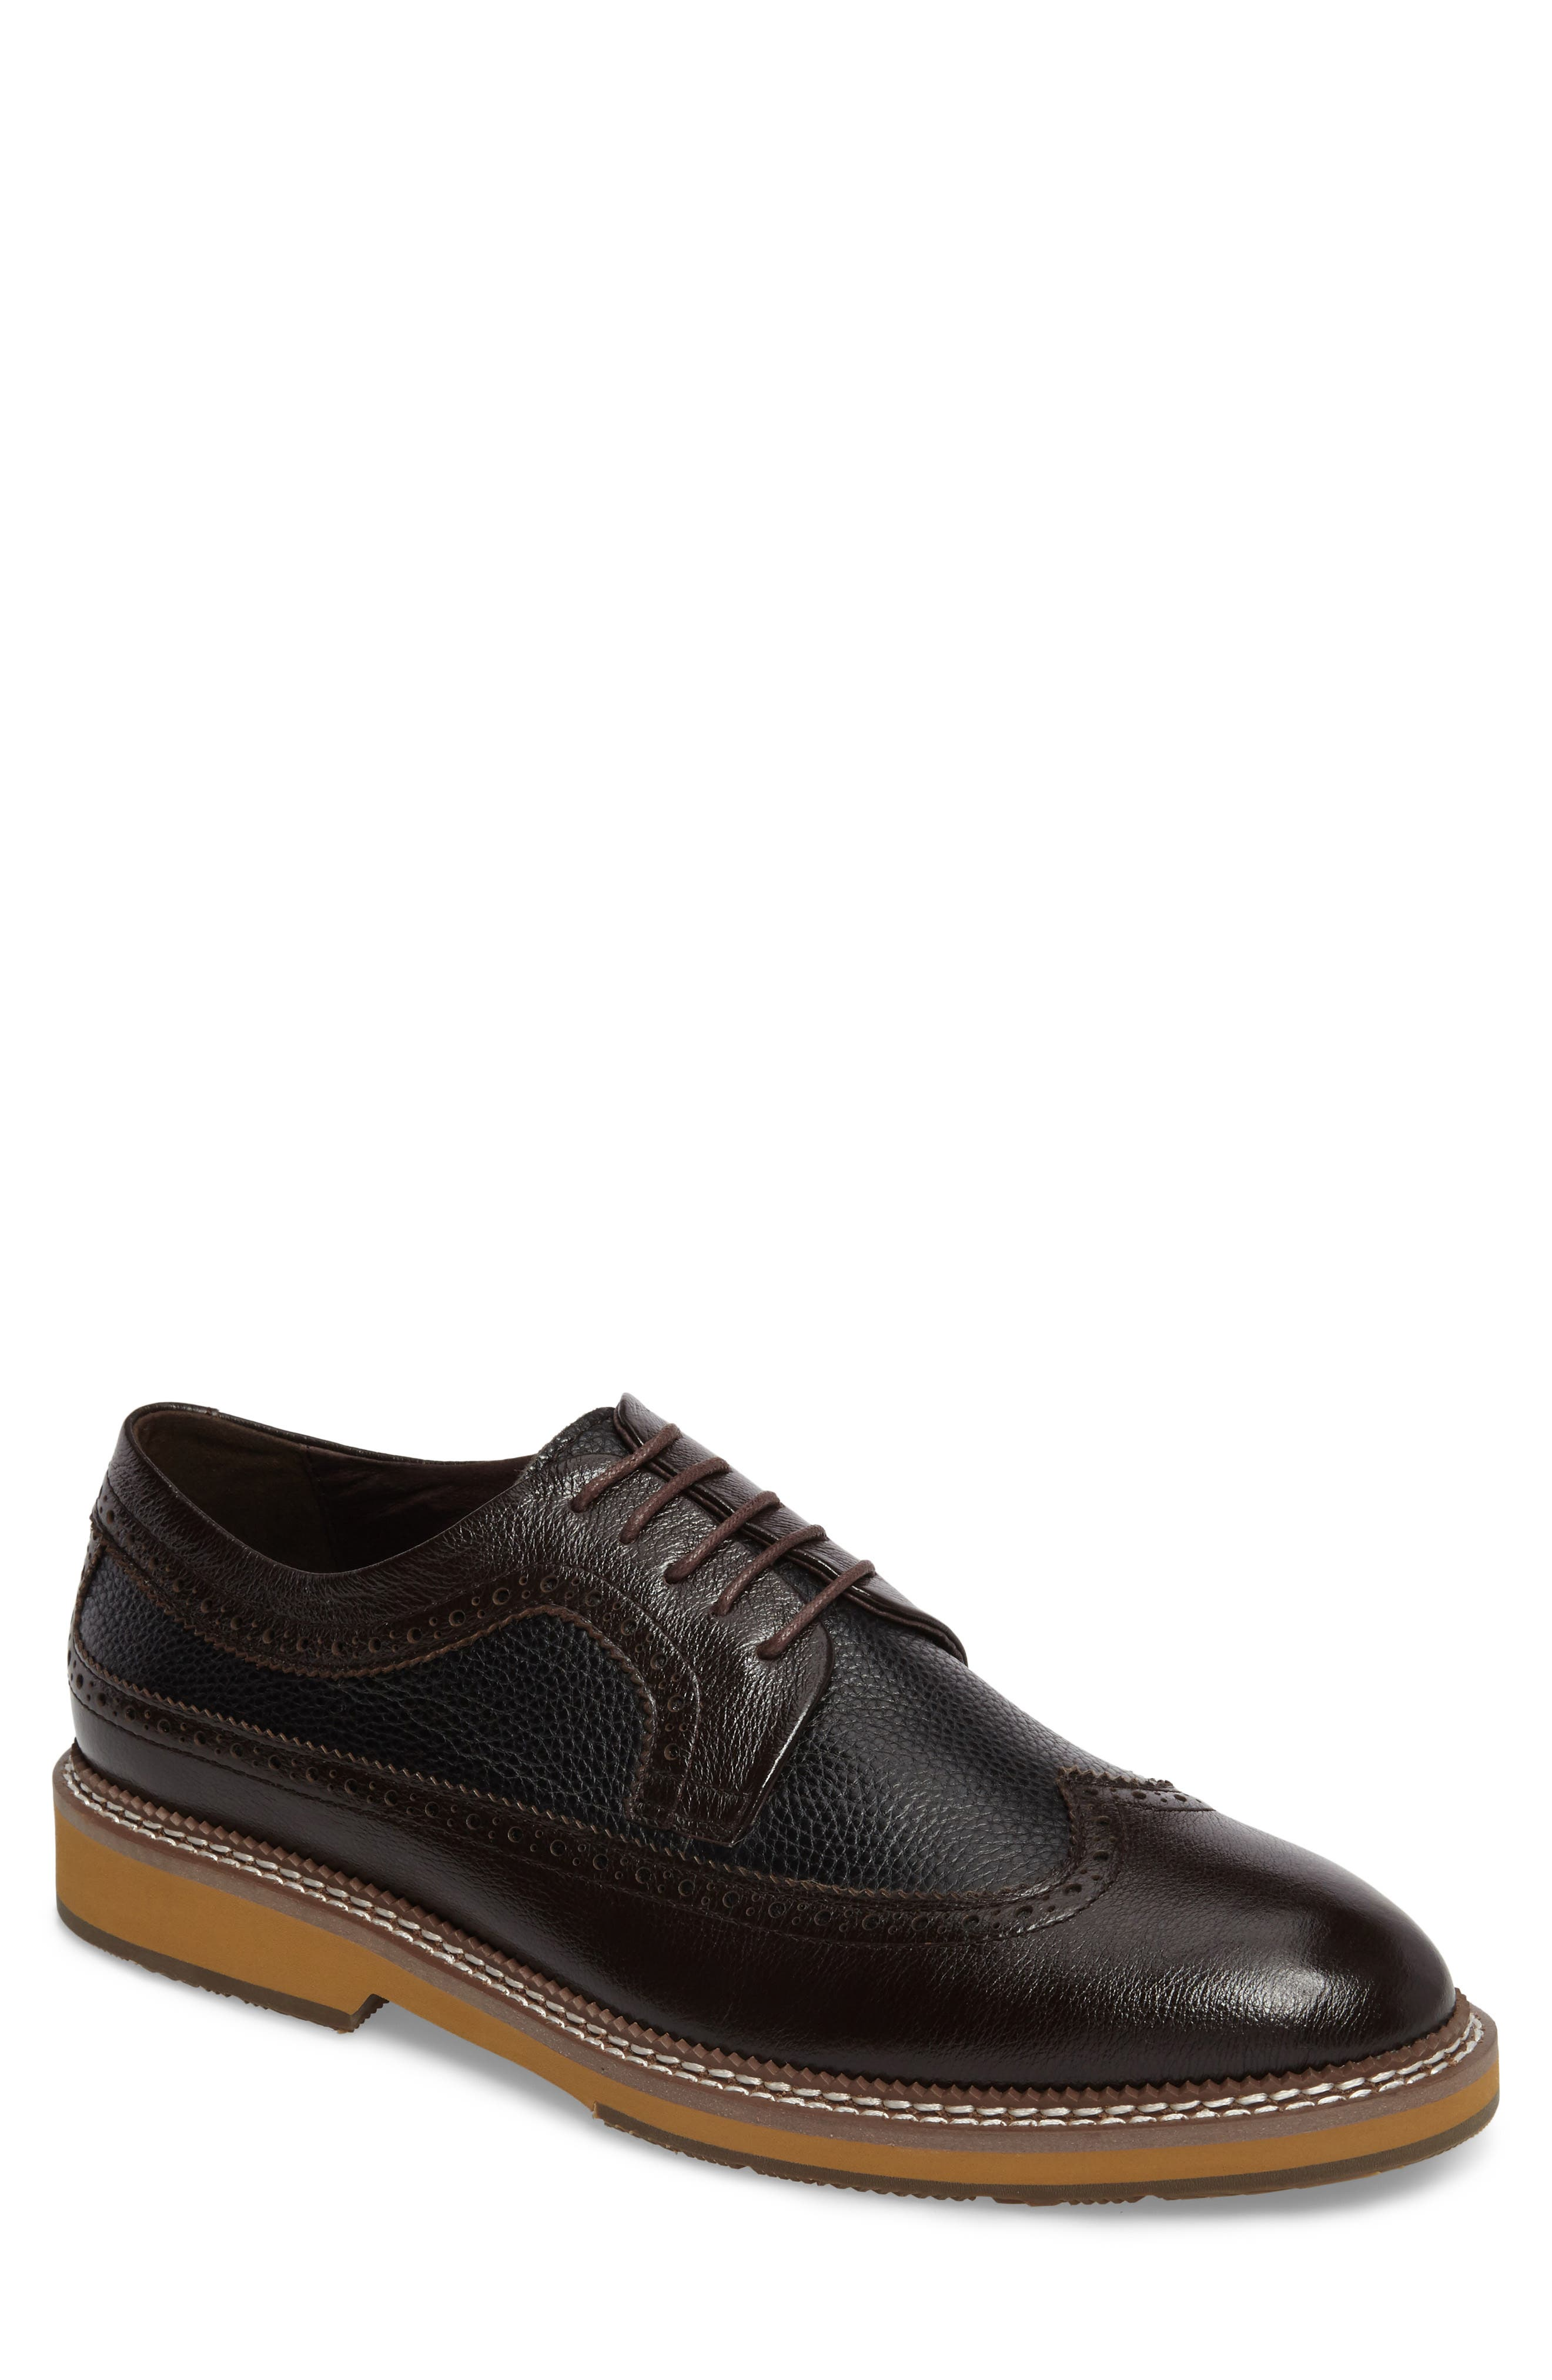 Fouquet Wingtip Derby,                             Main thumbnail 1, color,                             Brown Leather